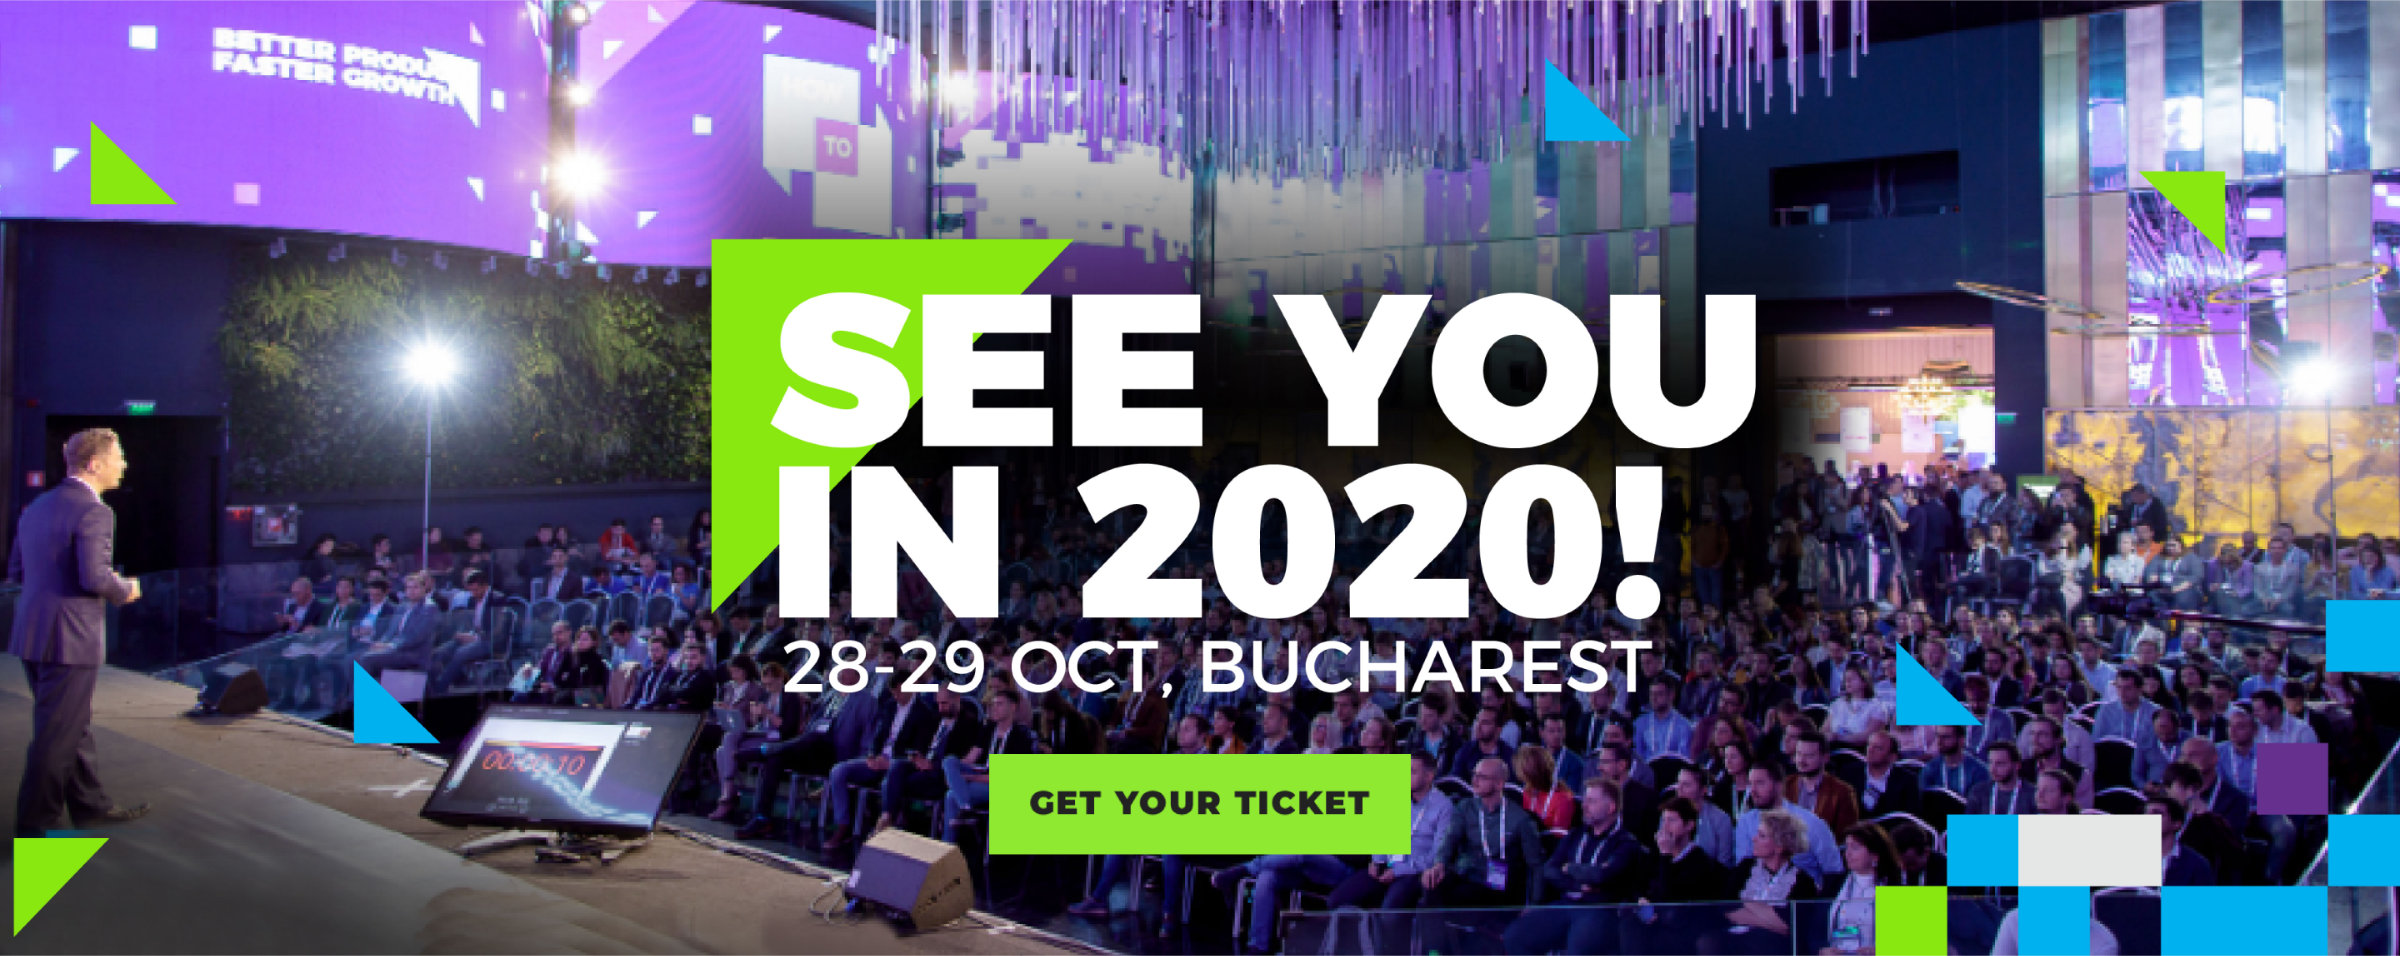 See you in 2020 - HOW TO WEB Conference 2020